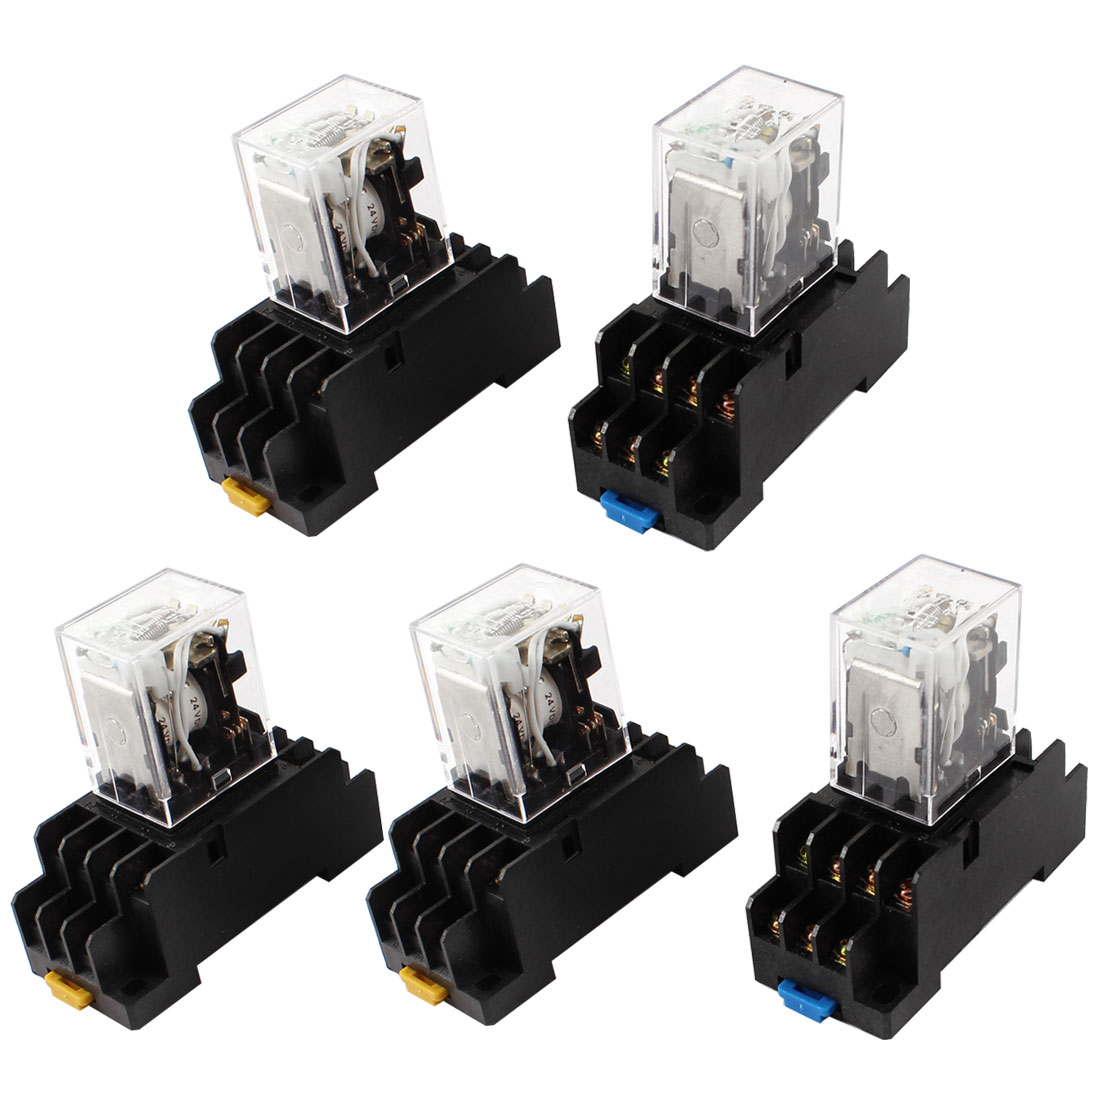 5 Pcs DC 24V Coil 4PDT 14 Pin Green LED General Purpose Power Relay w Socket Base